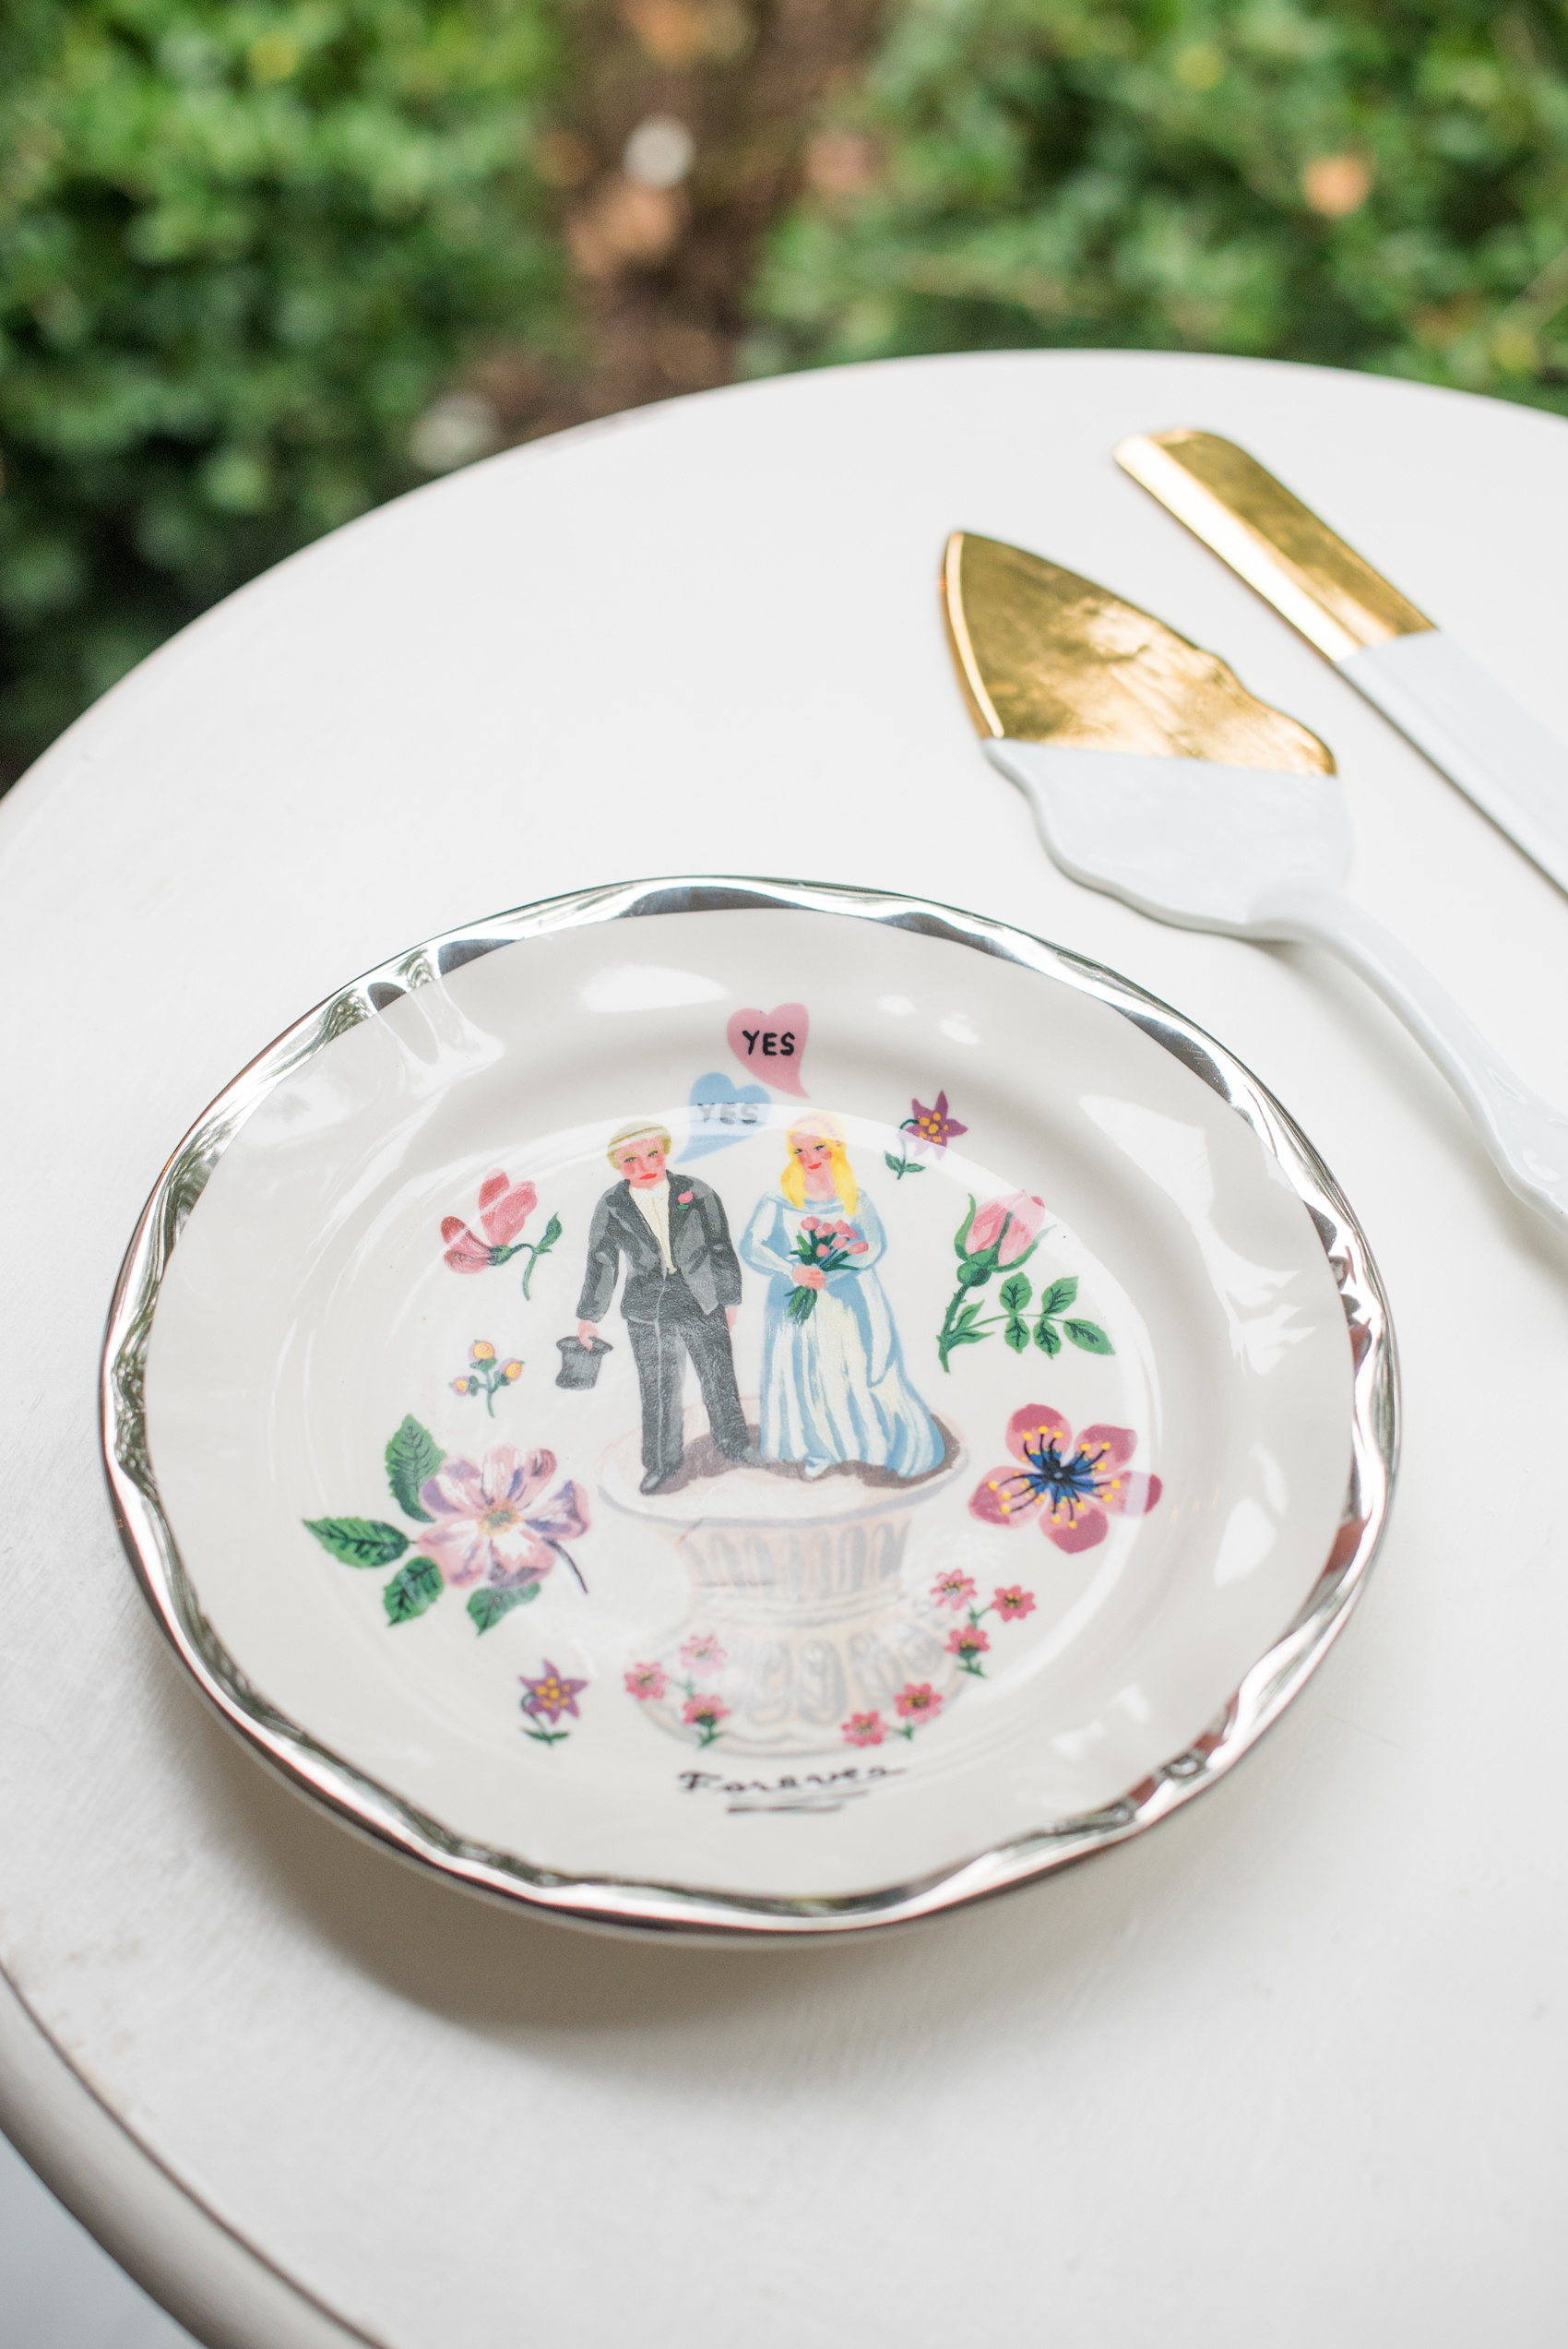 Mikkel Paige Photography photos from a wedding at Leslie-Alford Mims House in North Carolina. Picture of the handpainted cake plate and gold and white serving ware.